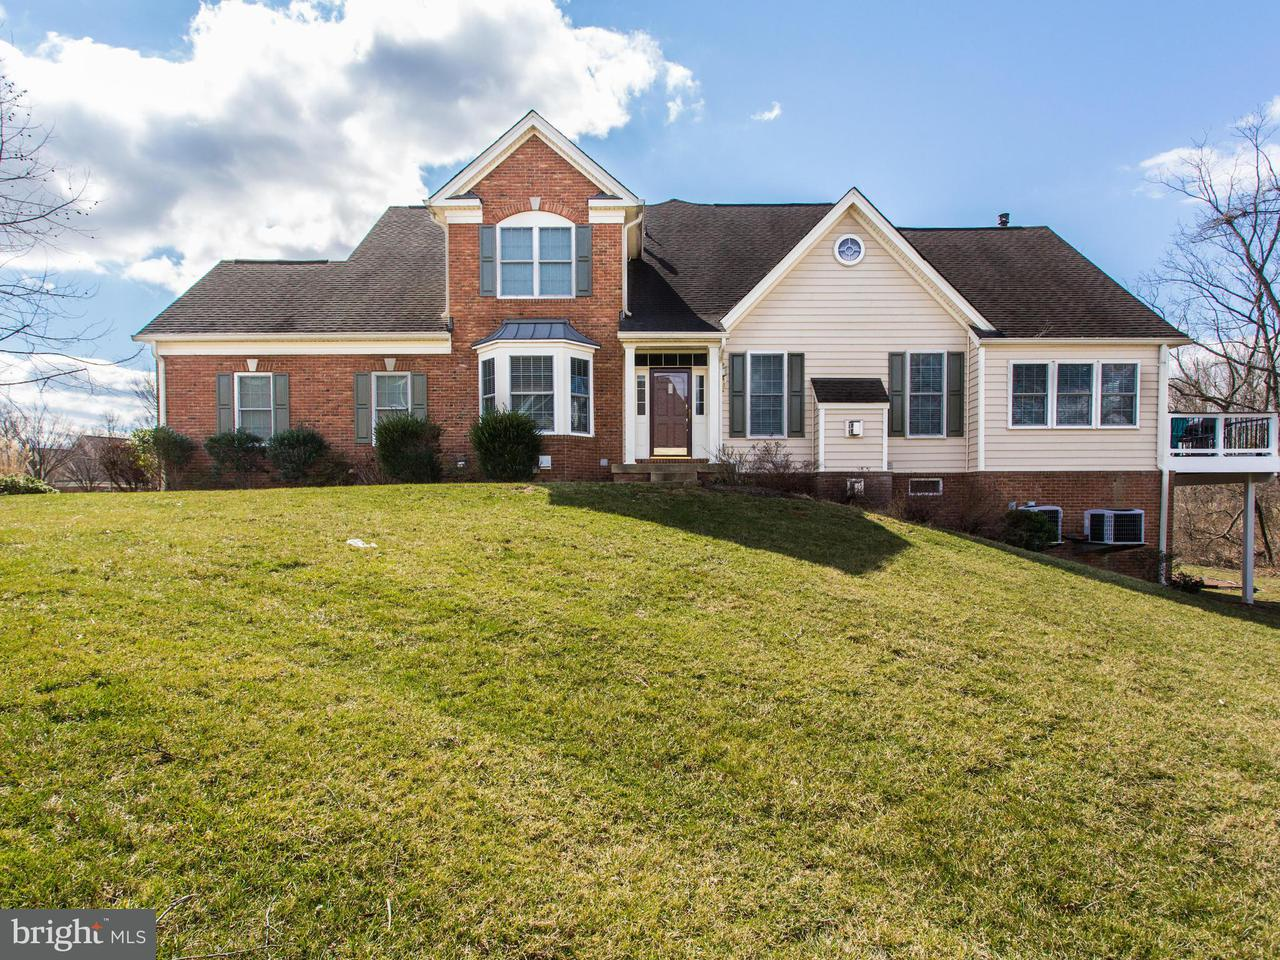 Other Residential for Rent at 5765 Amelia Springs Cir Haymarket, Virginia 20169 United States